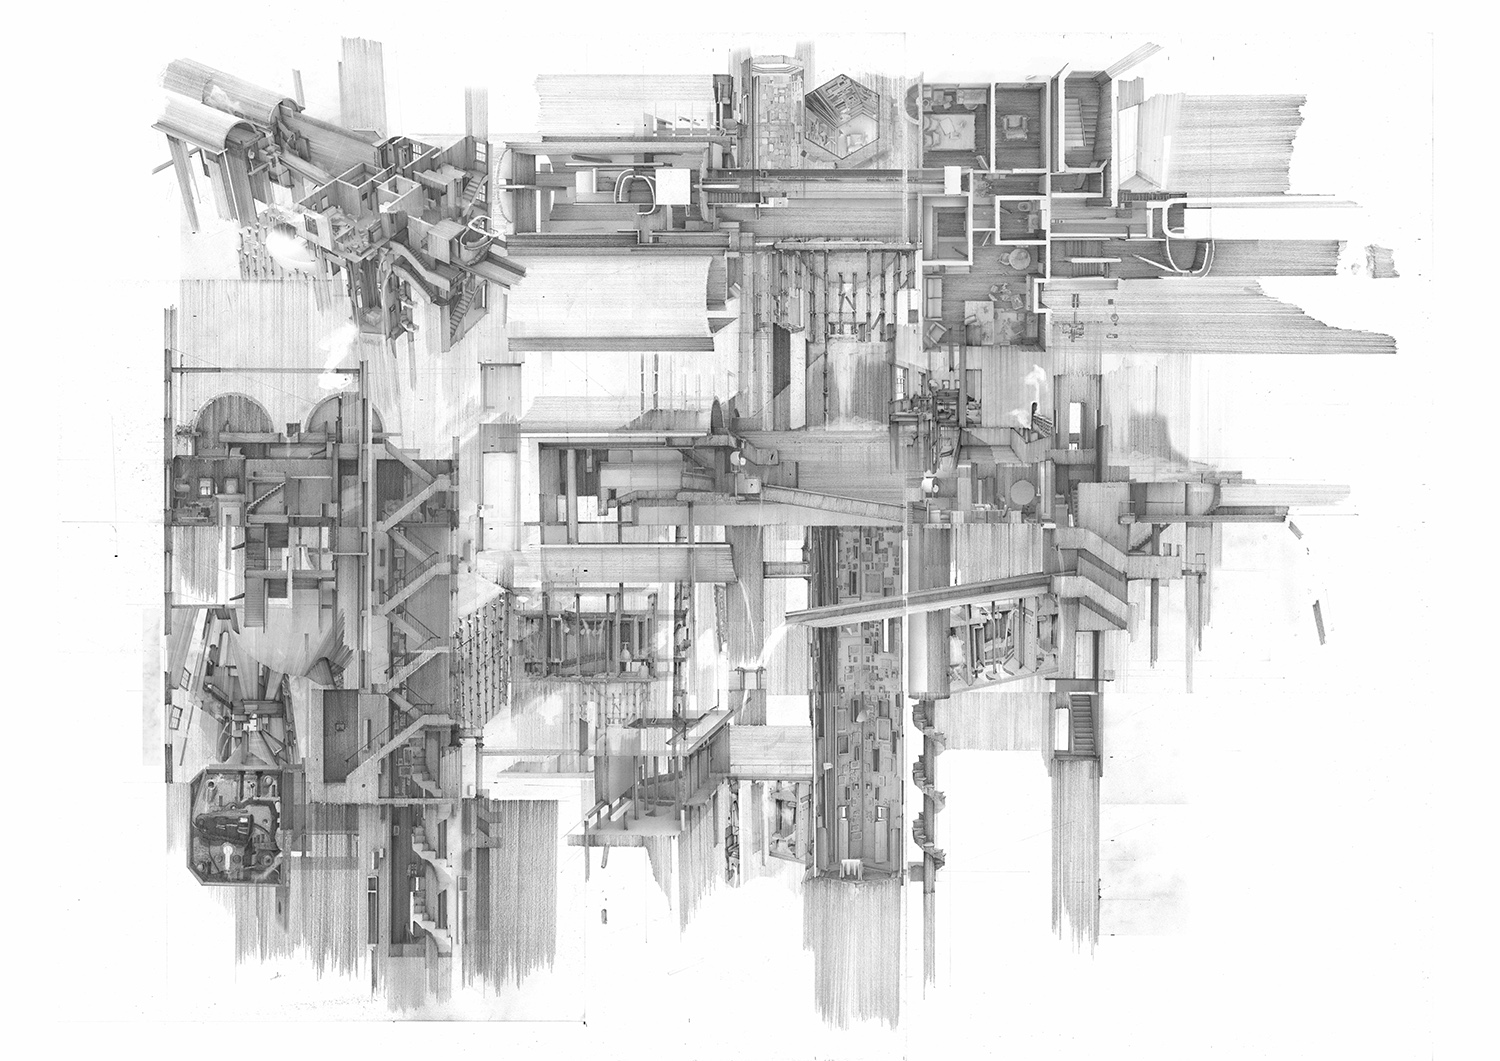 Pencil and digital drawing of an architectural construction